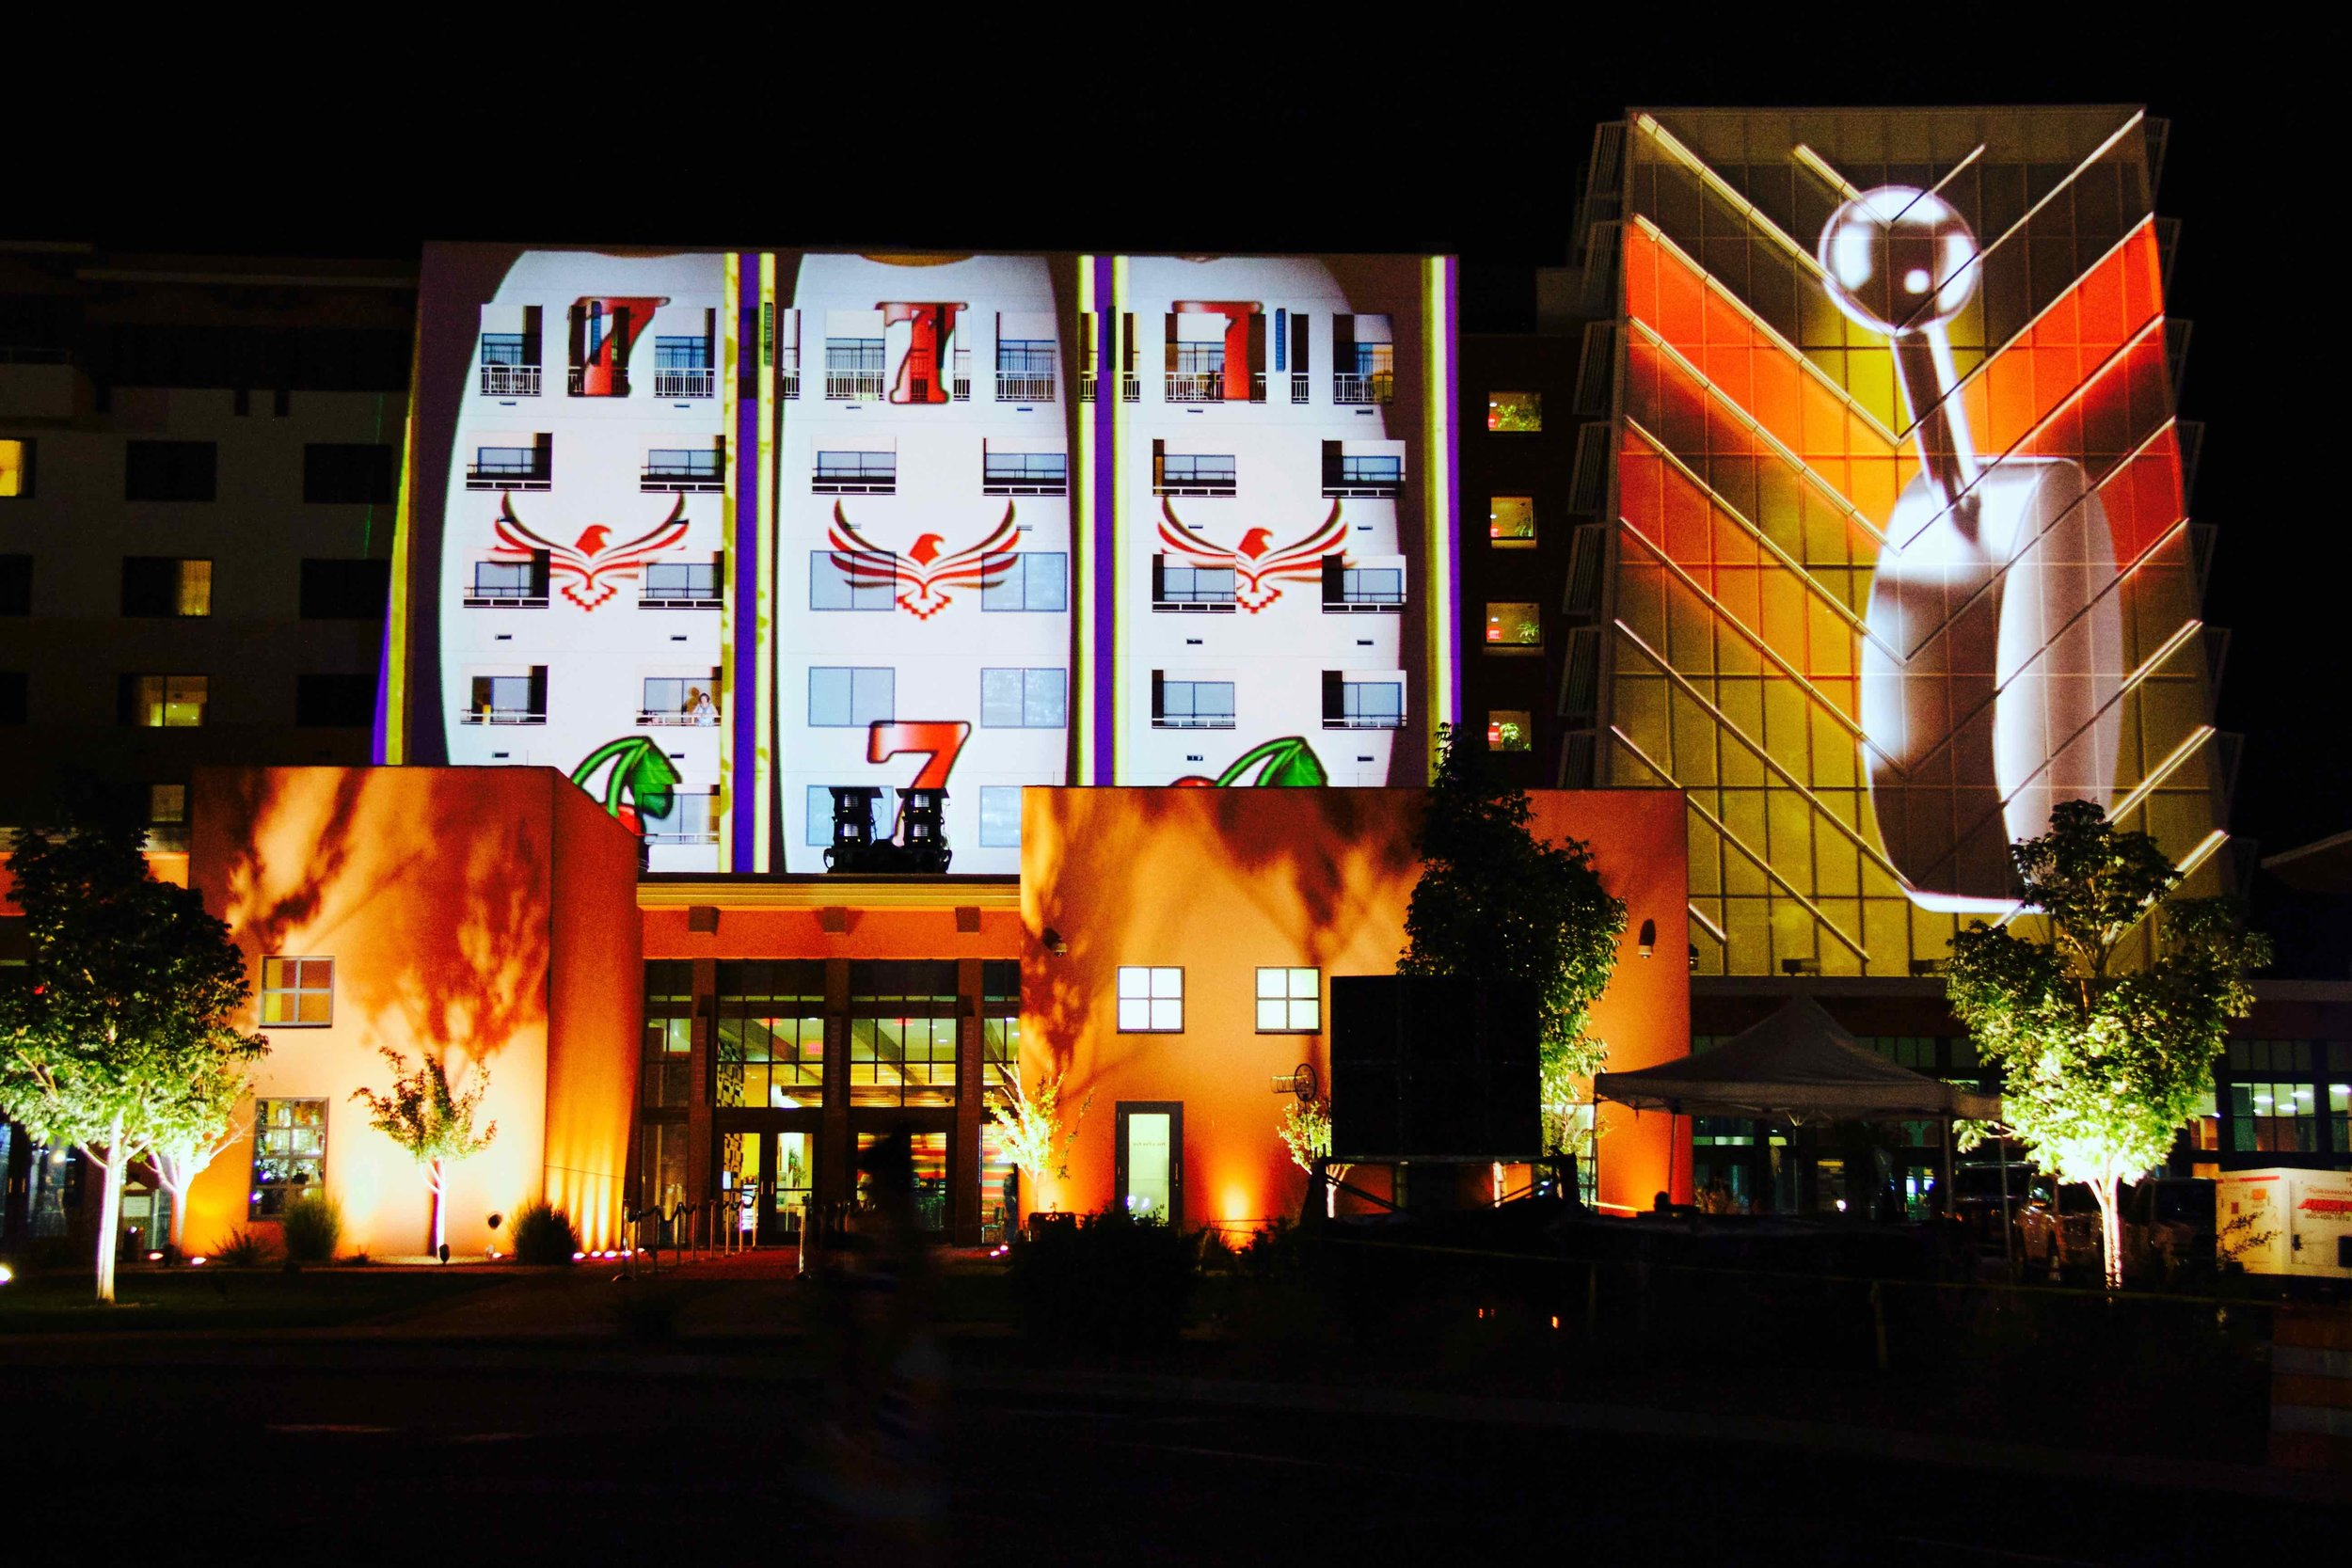 OMG | OnMedia | Experiential Marketing | Mobile Billboards | 3D Architectural Projections | Projection Mapping | Isleta casino | new mexico-4.jpg